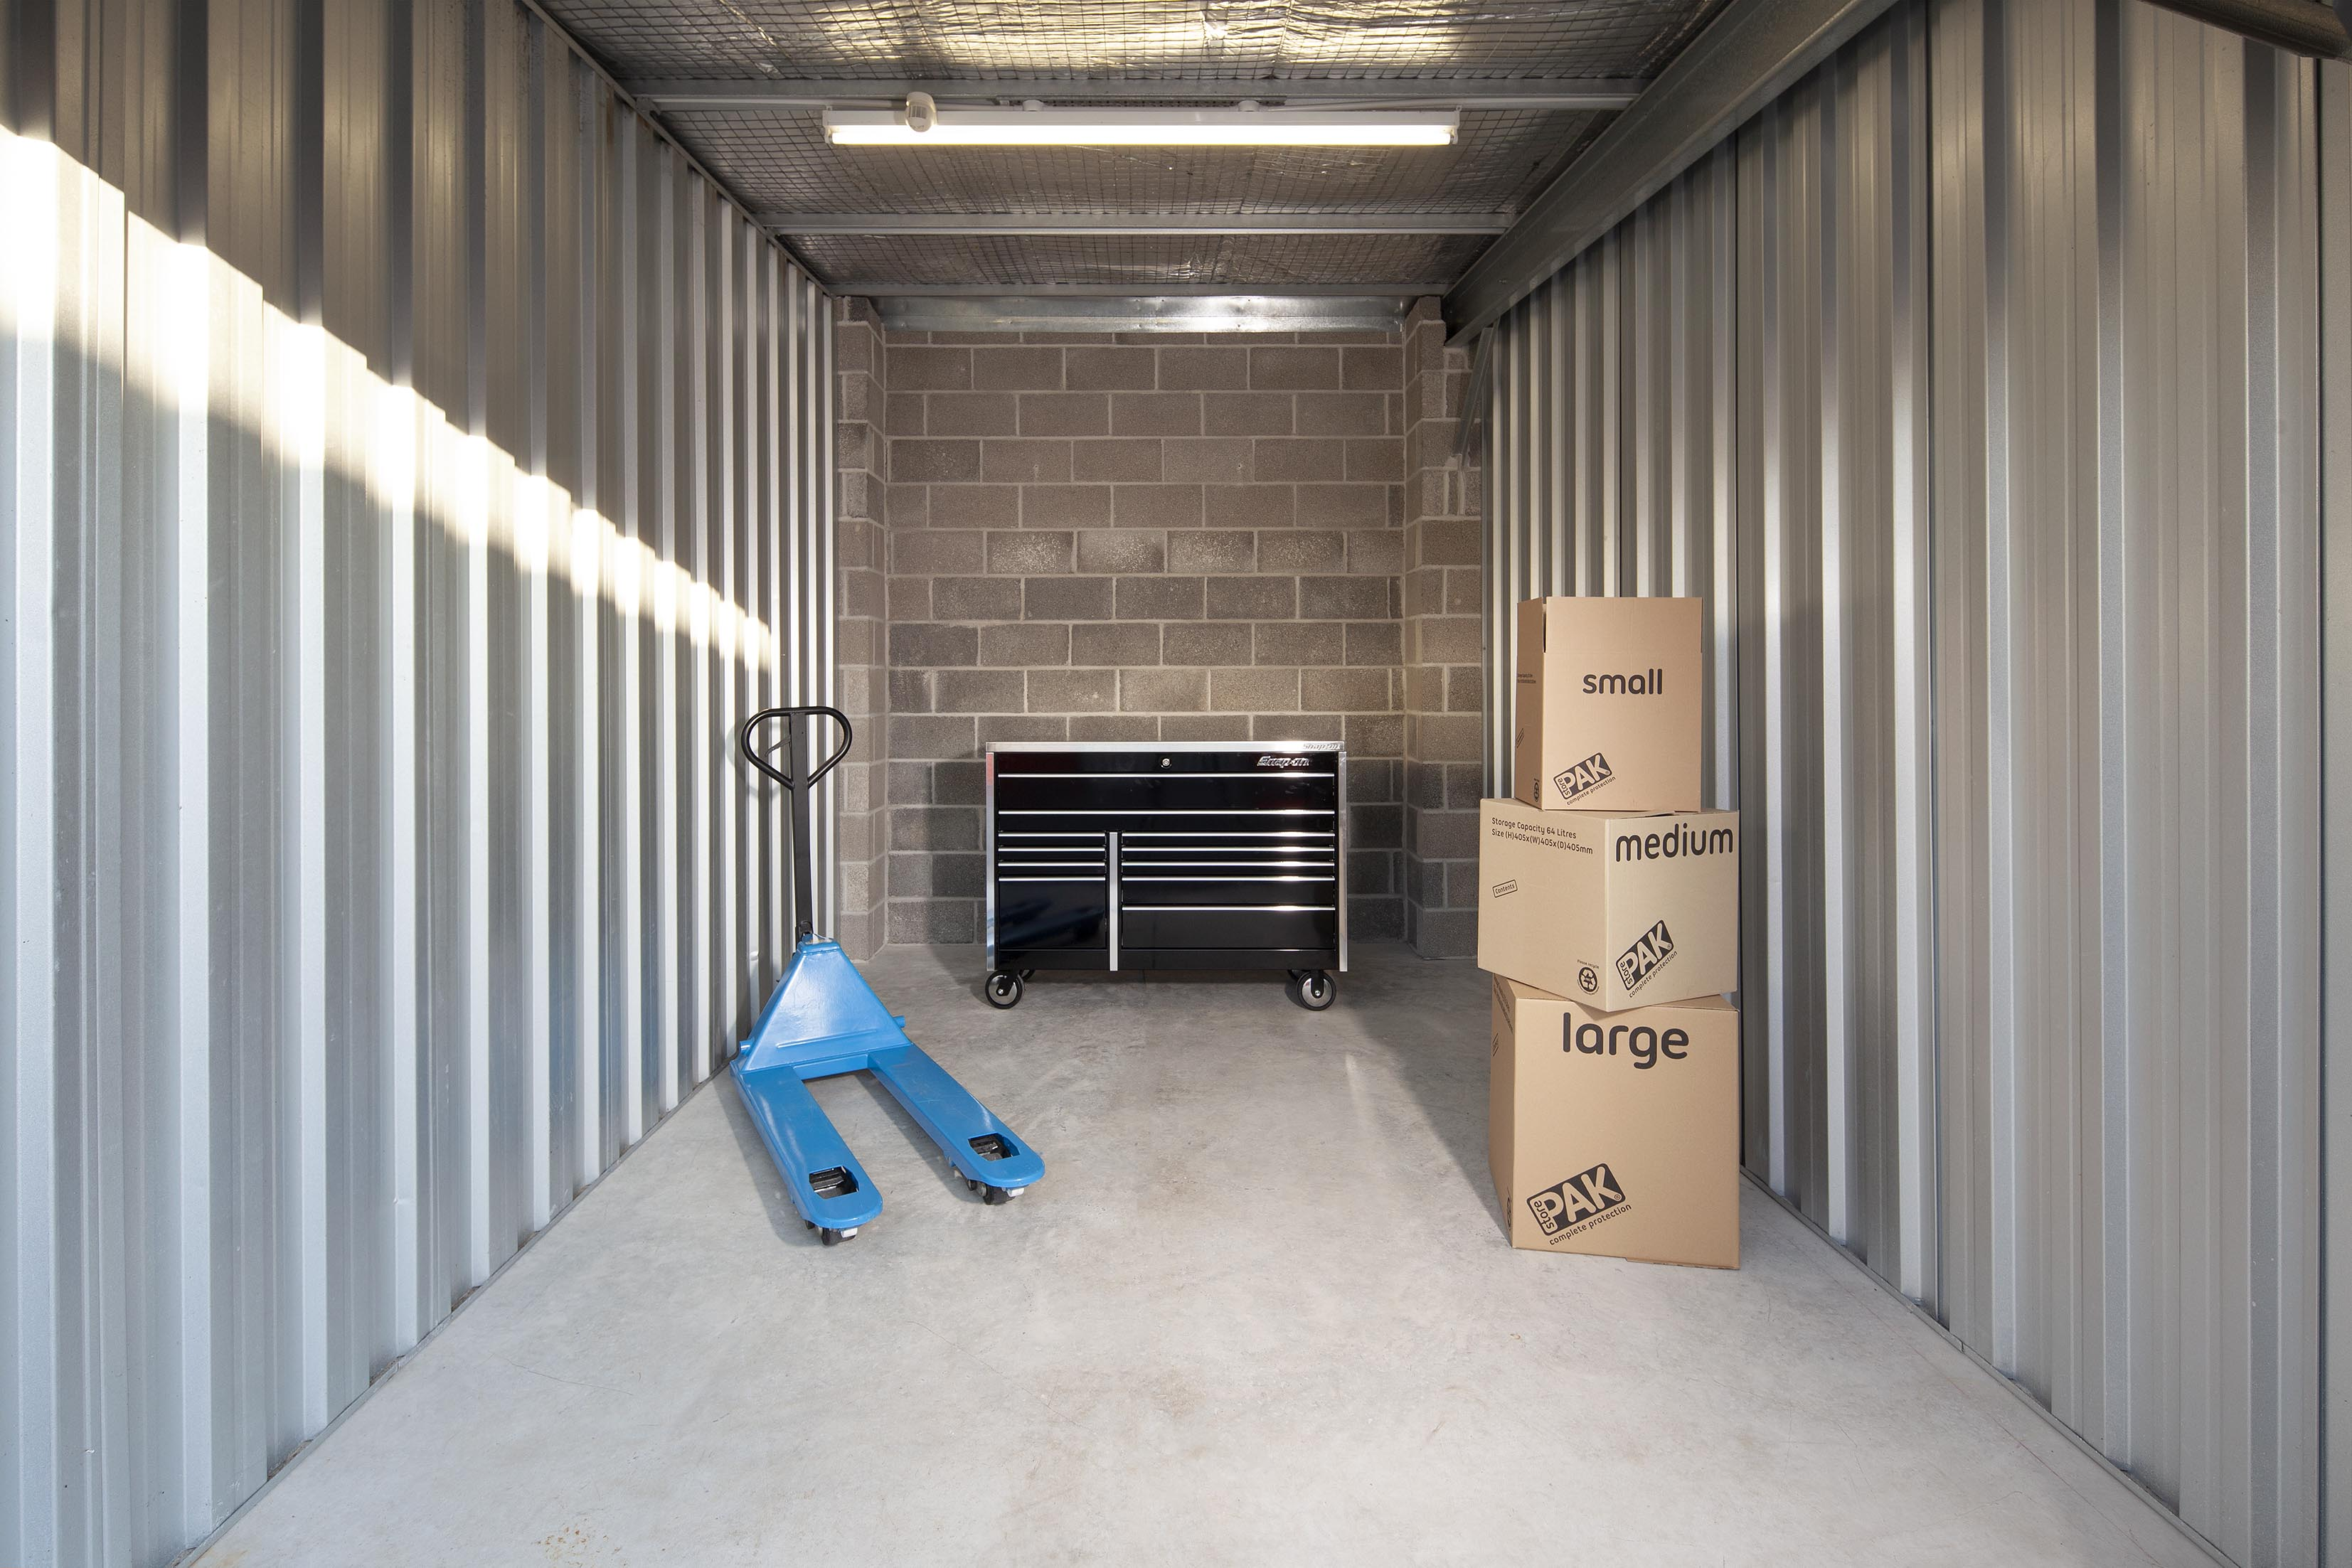 140 ft storage unit with mobile tool trolly, boxes and a pallet mover.